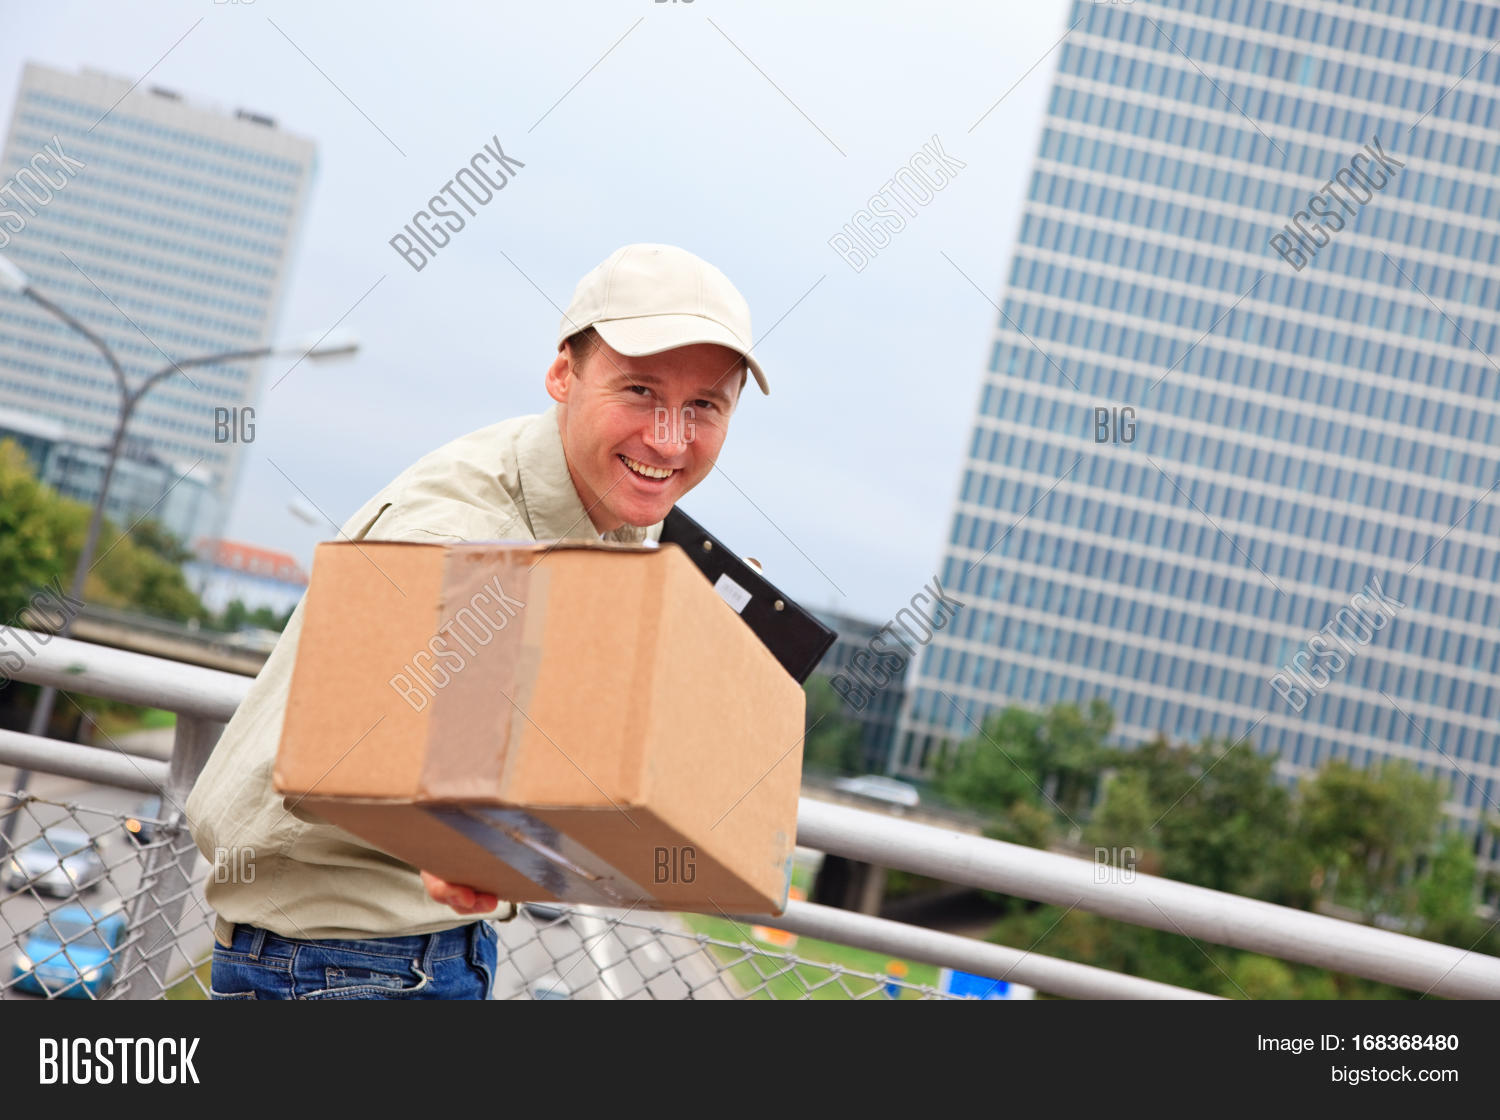 Tall City Delivery >> Smiling Delivery Image Photo Free Trial Bigstock